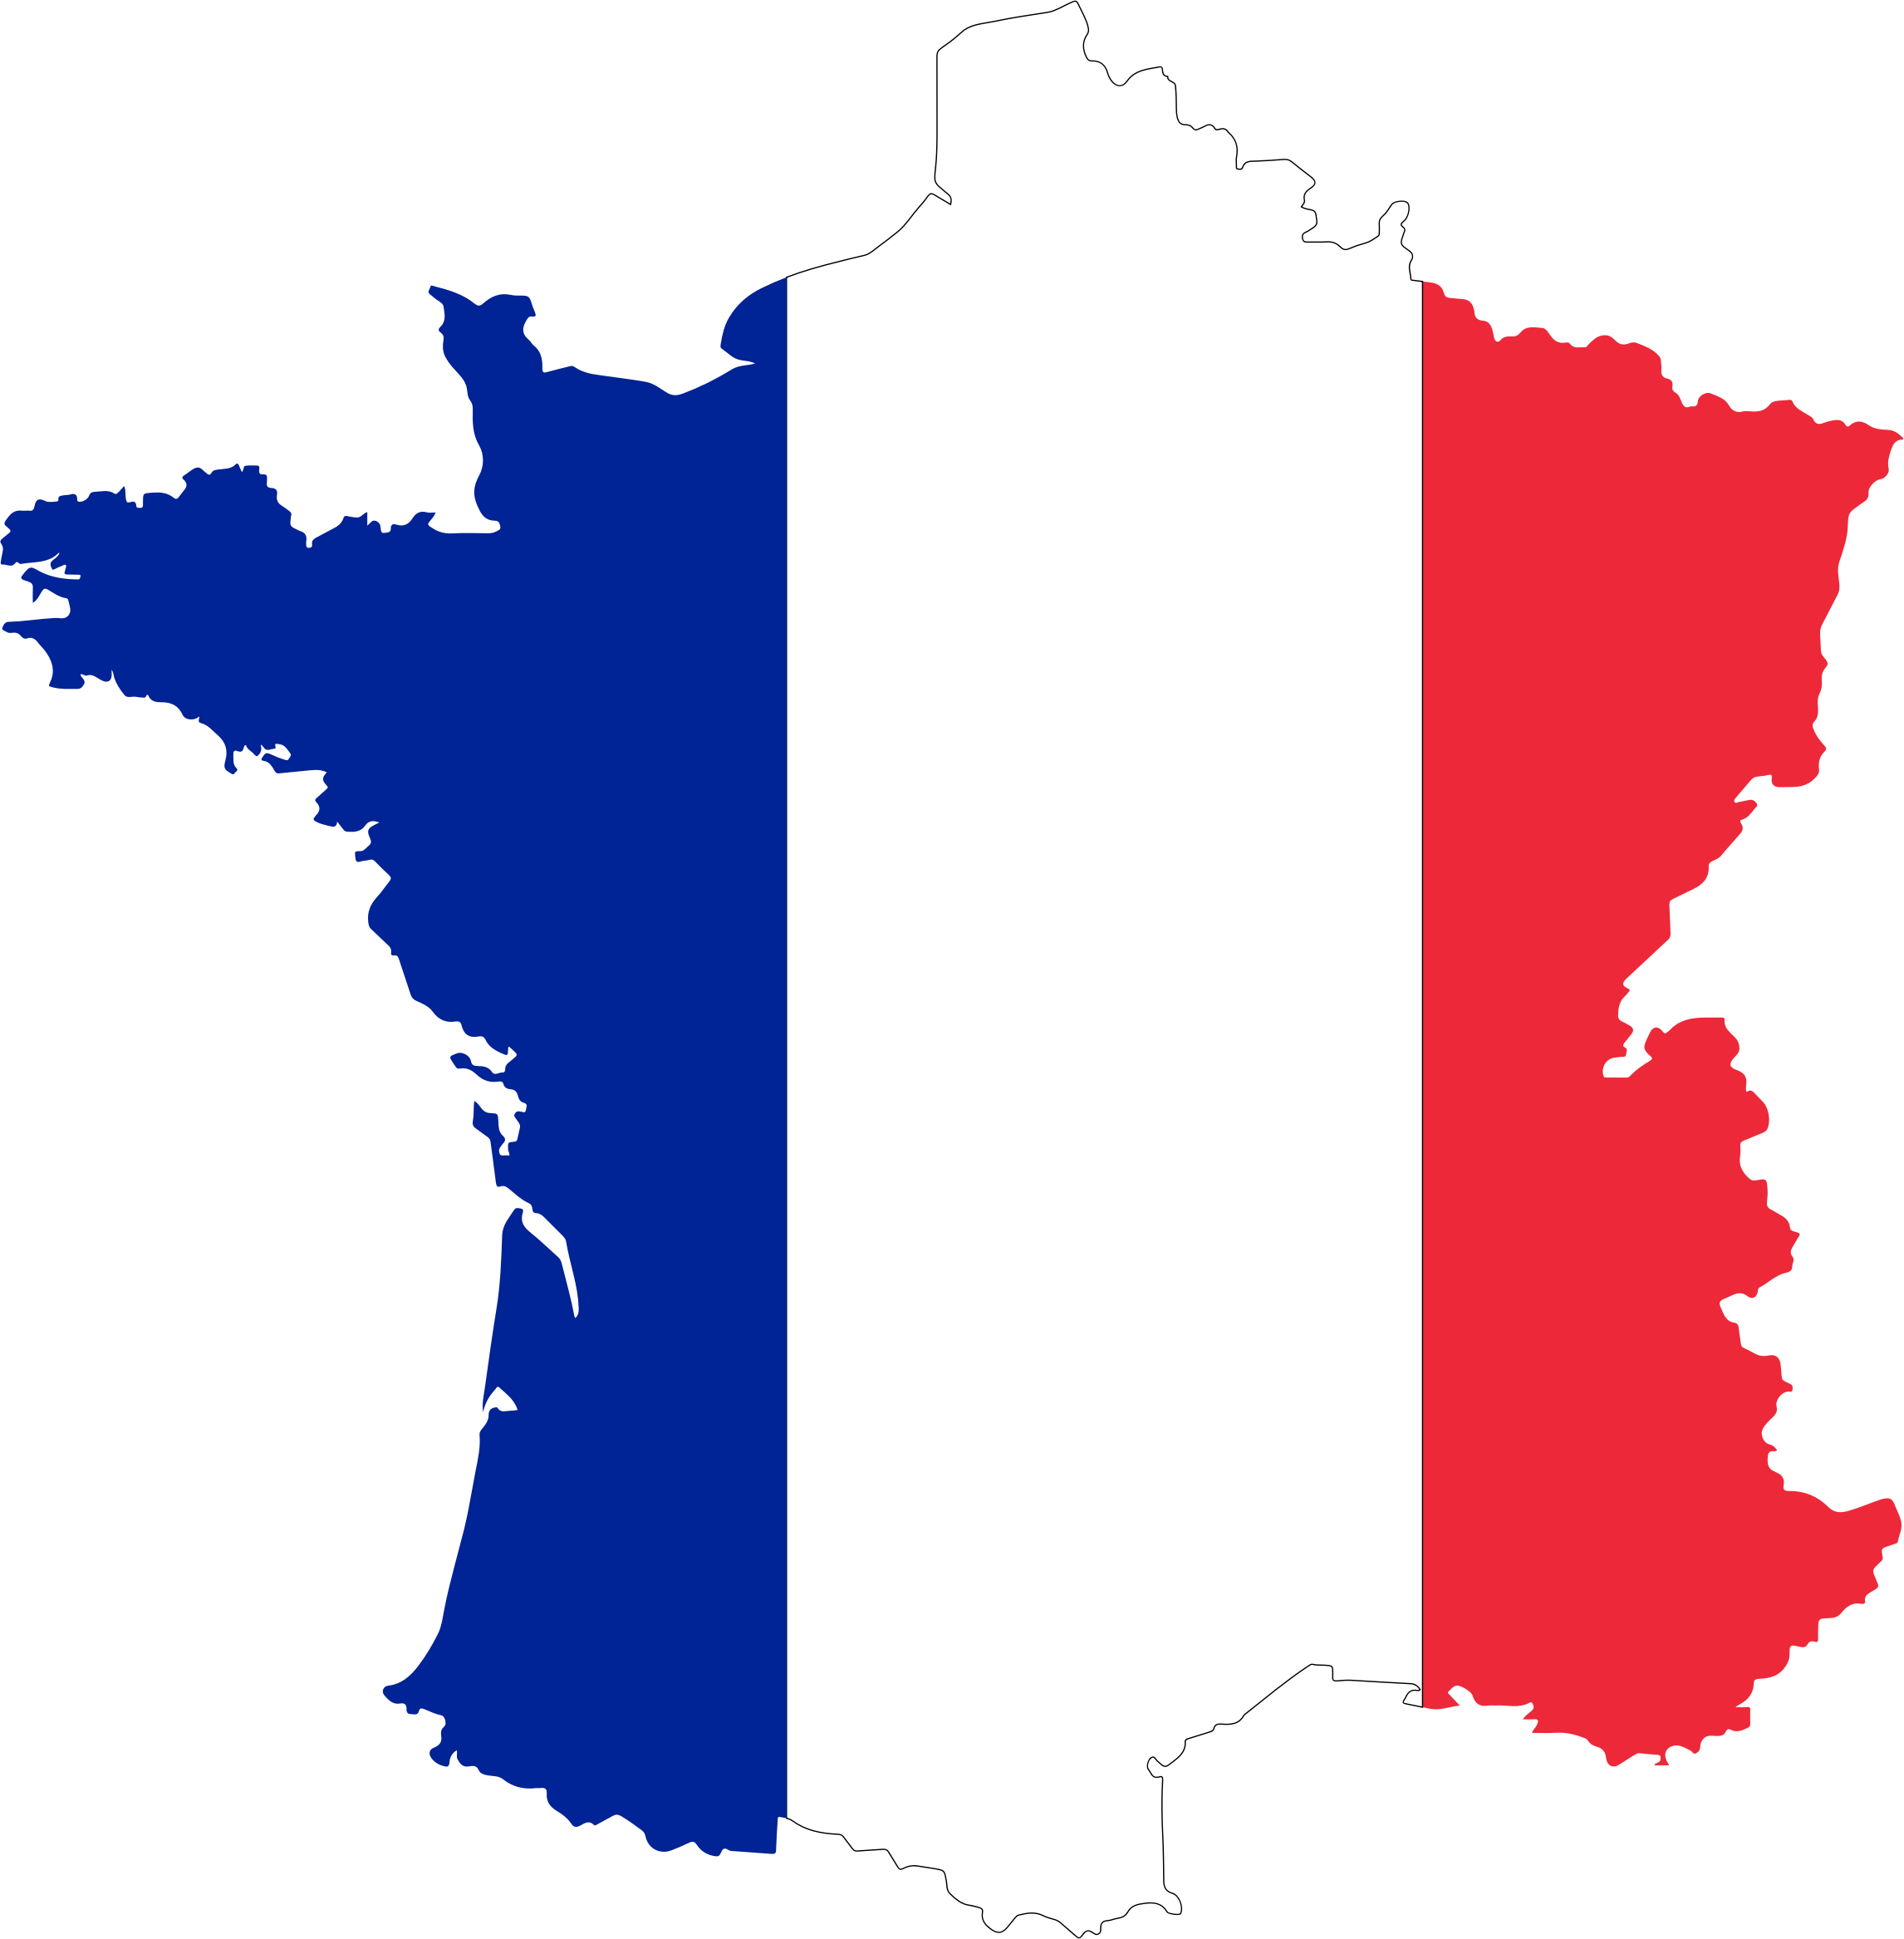 france clipart images - photo #40